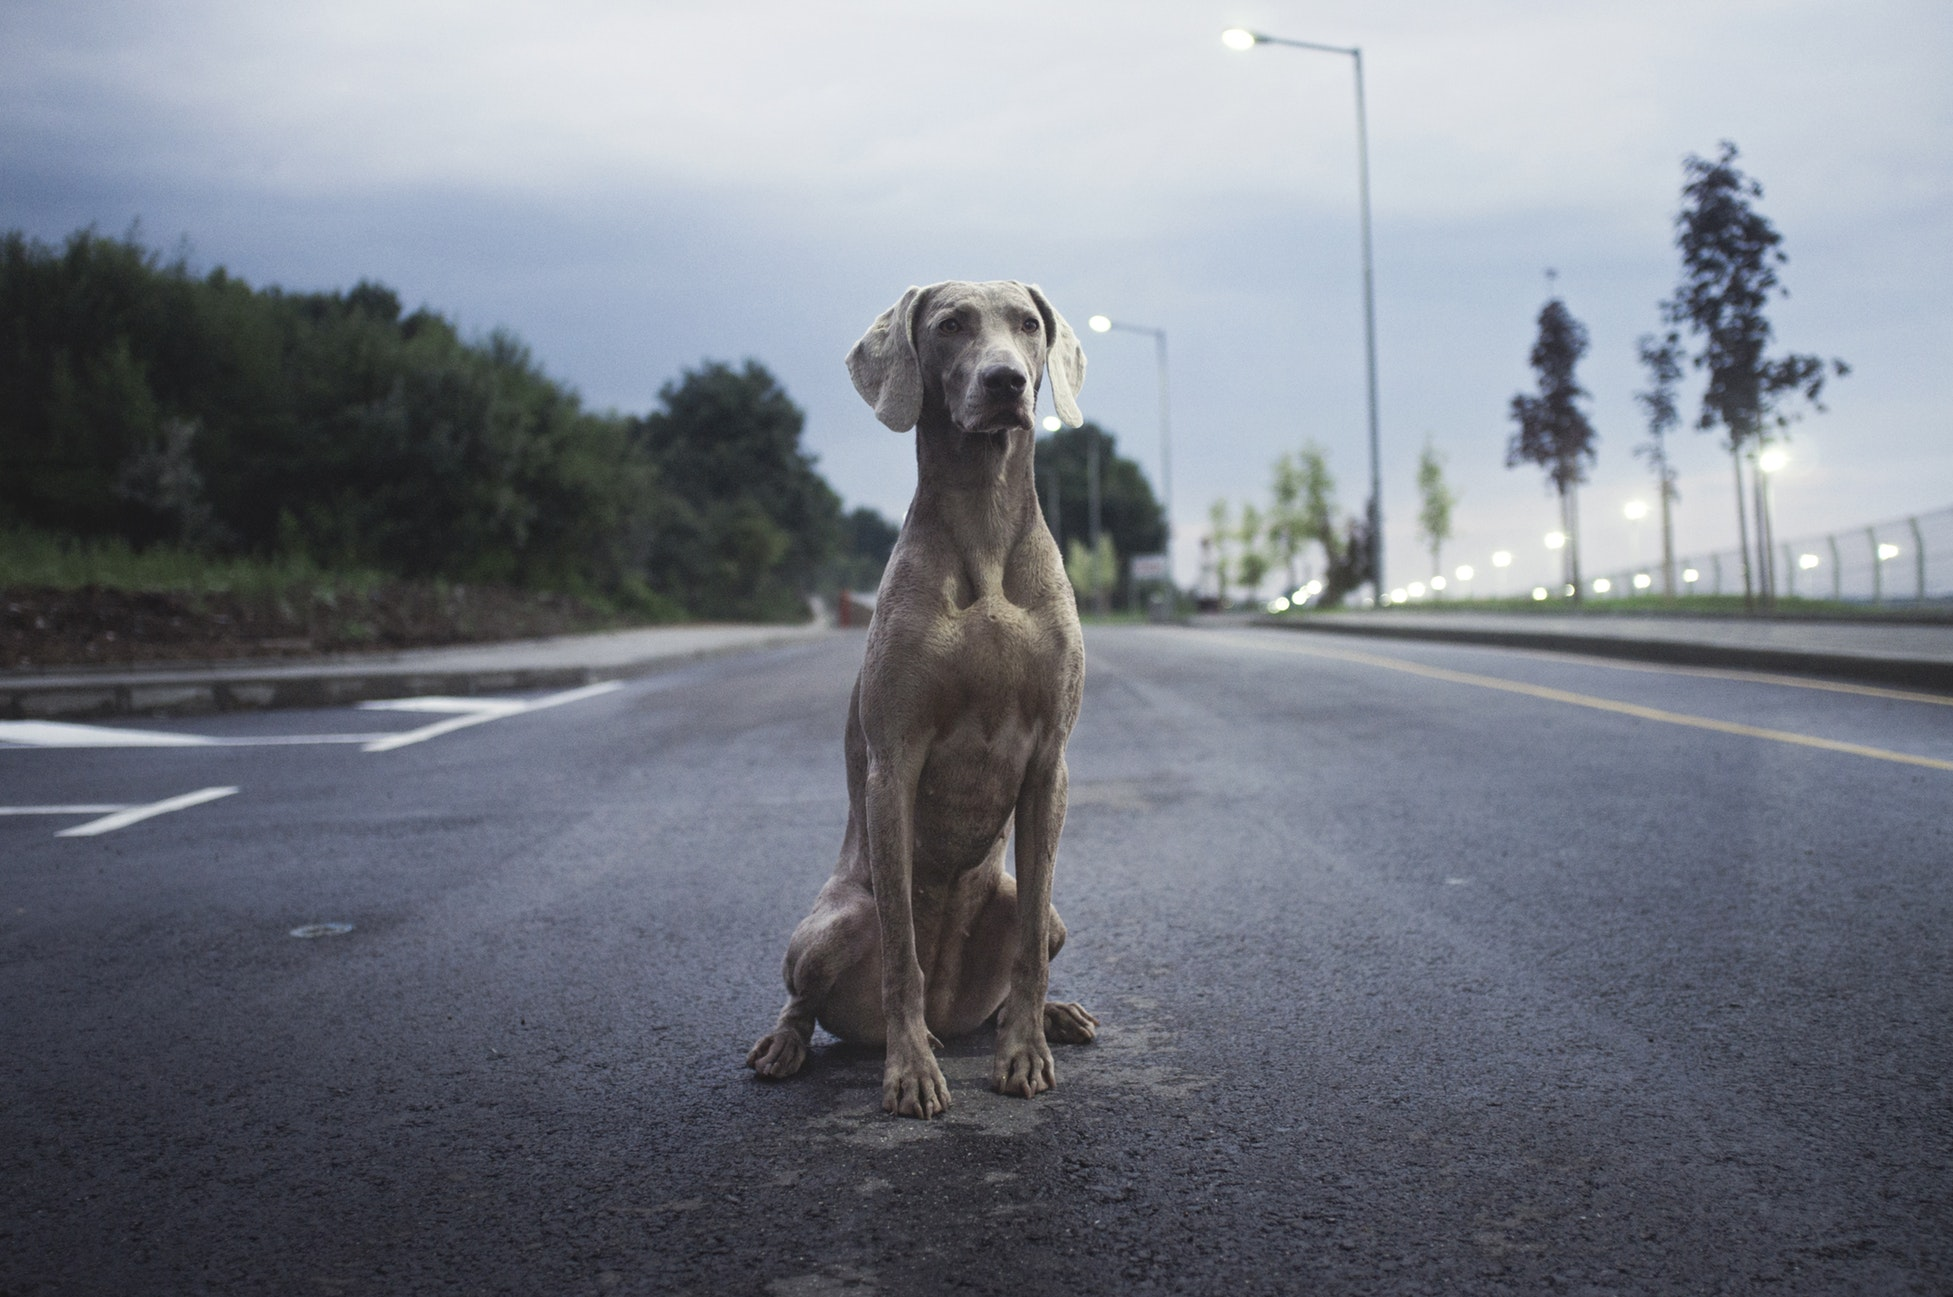 Gray dog sitting in the middle of a road.